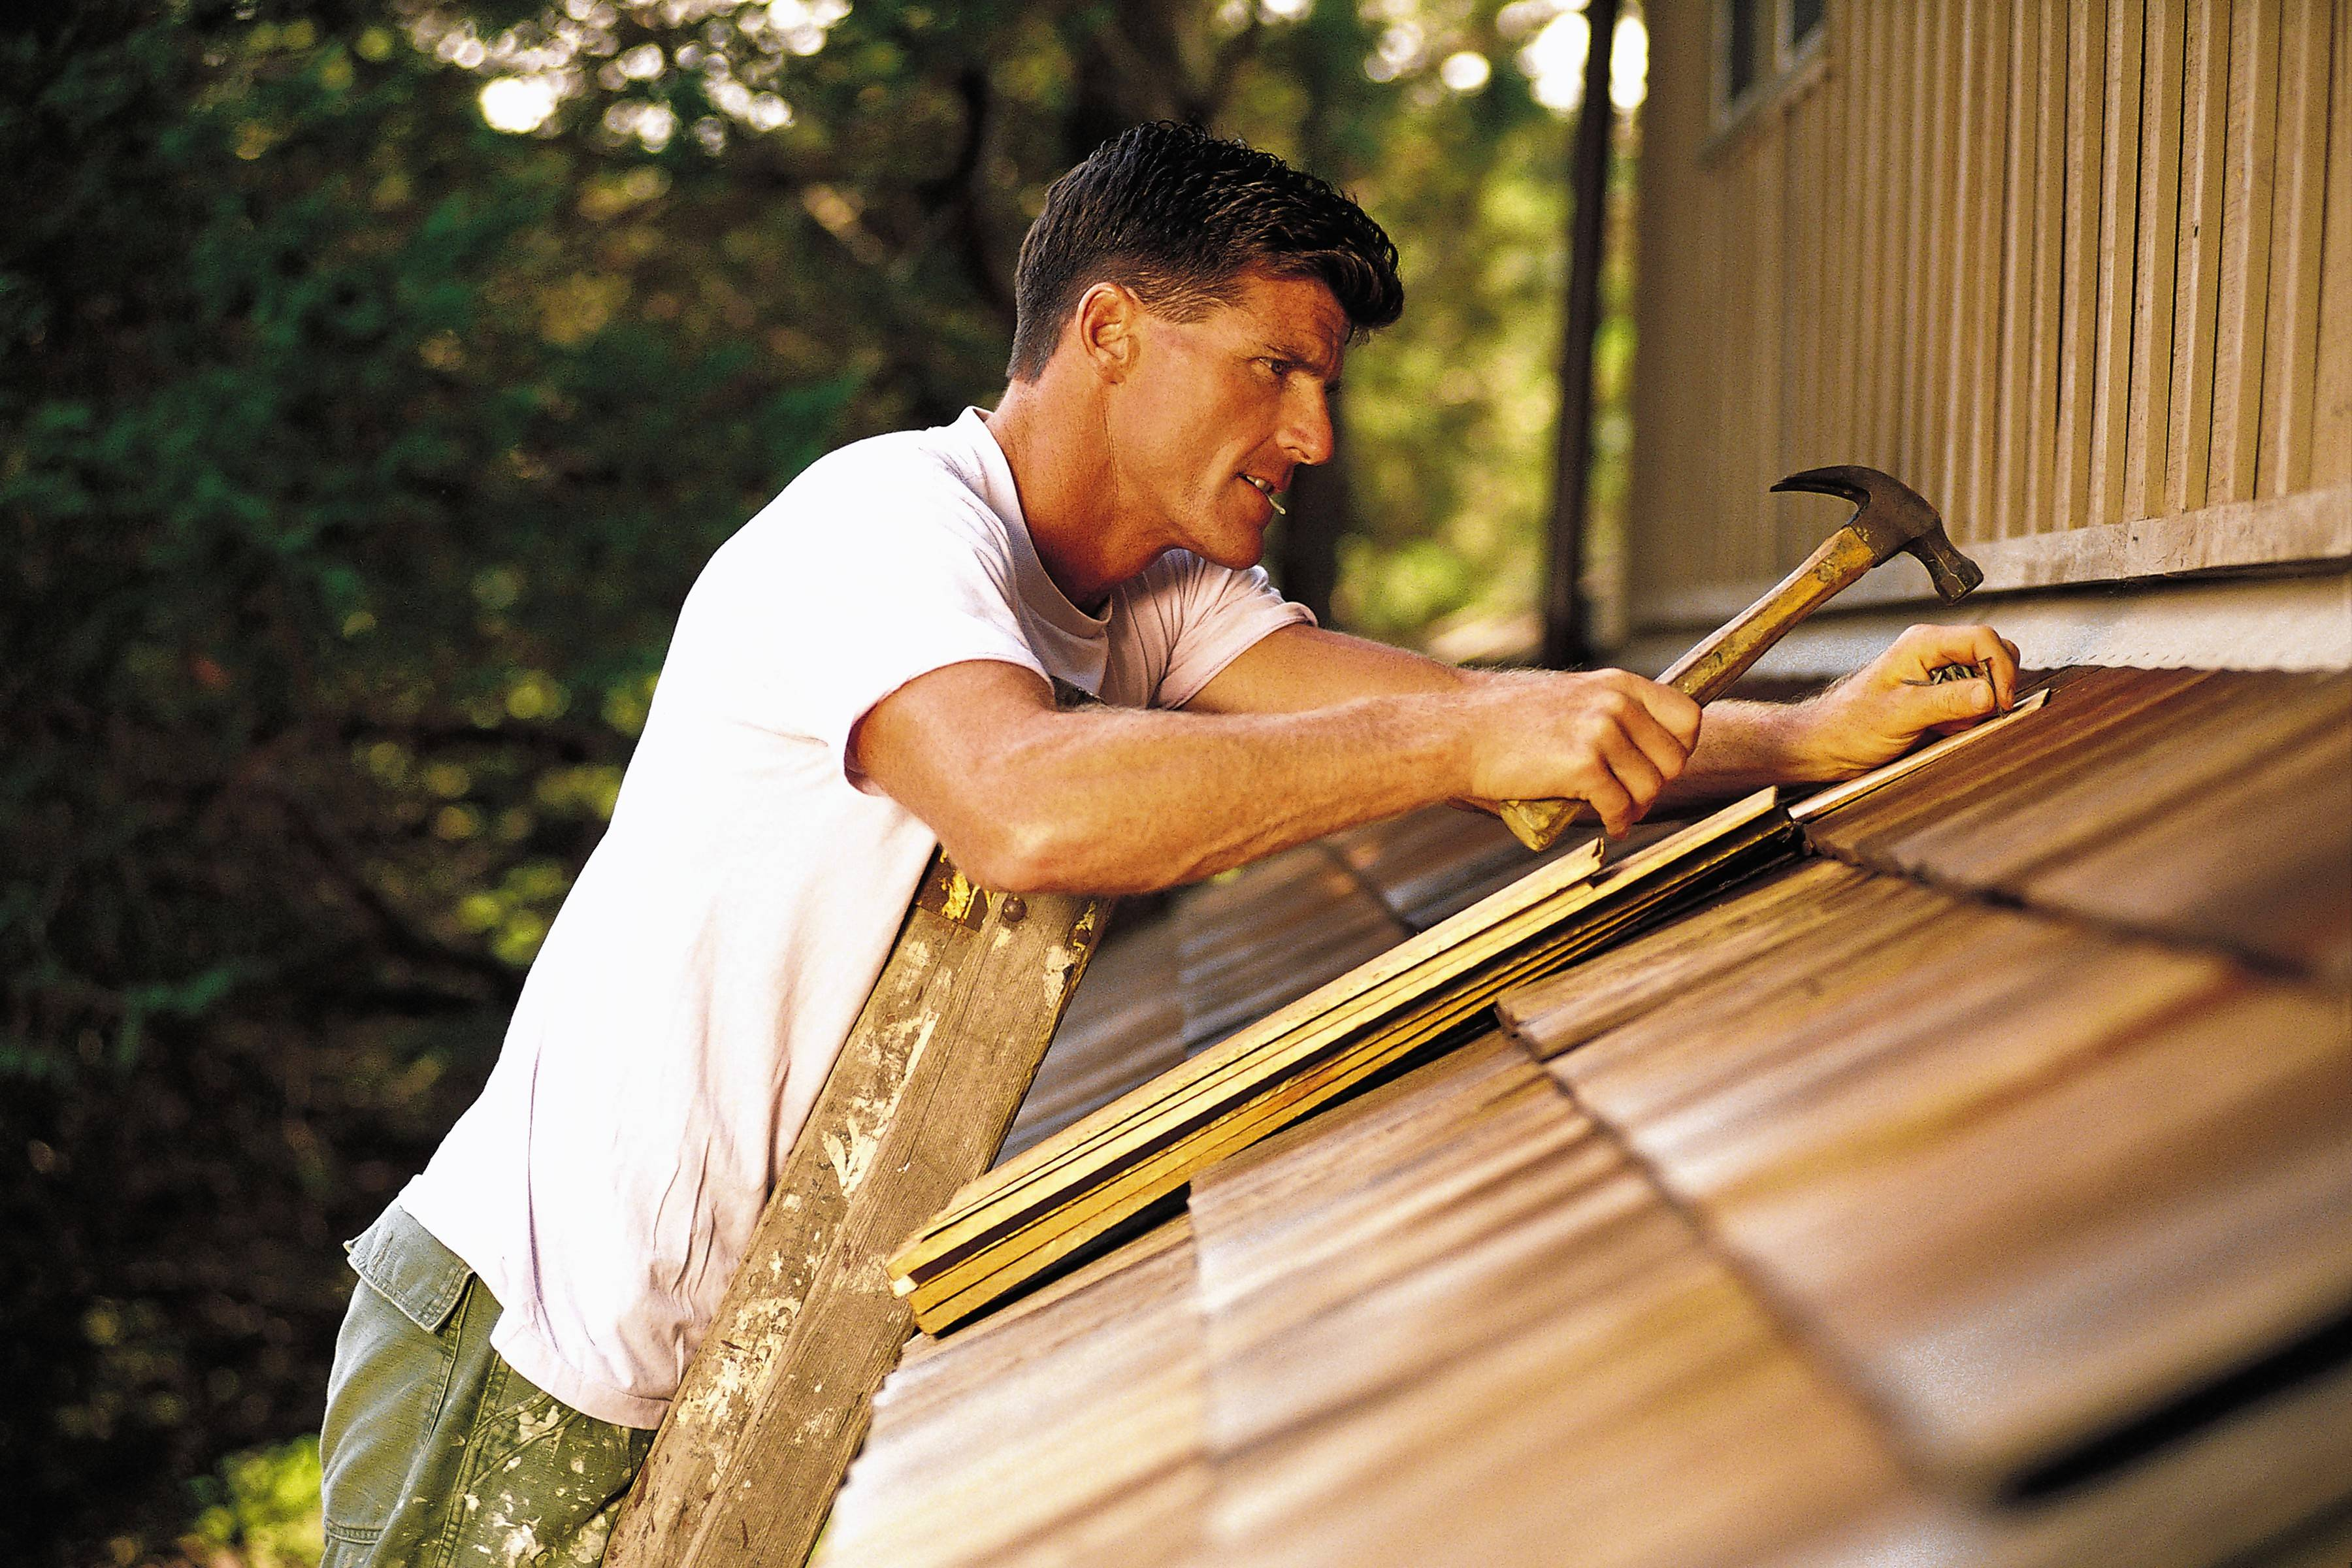 Cedar shingles are a popular alternative to asphalt, but they will cost more.